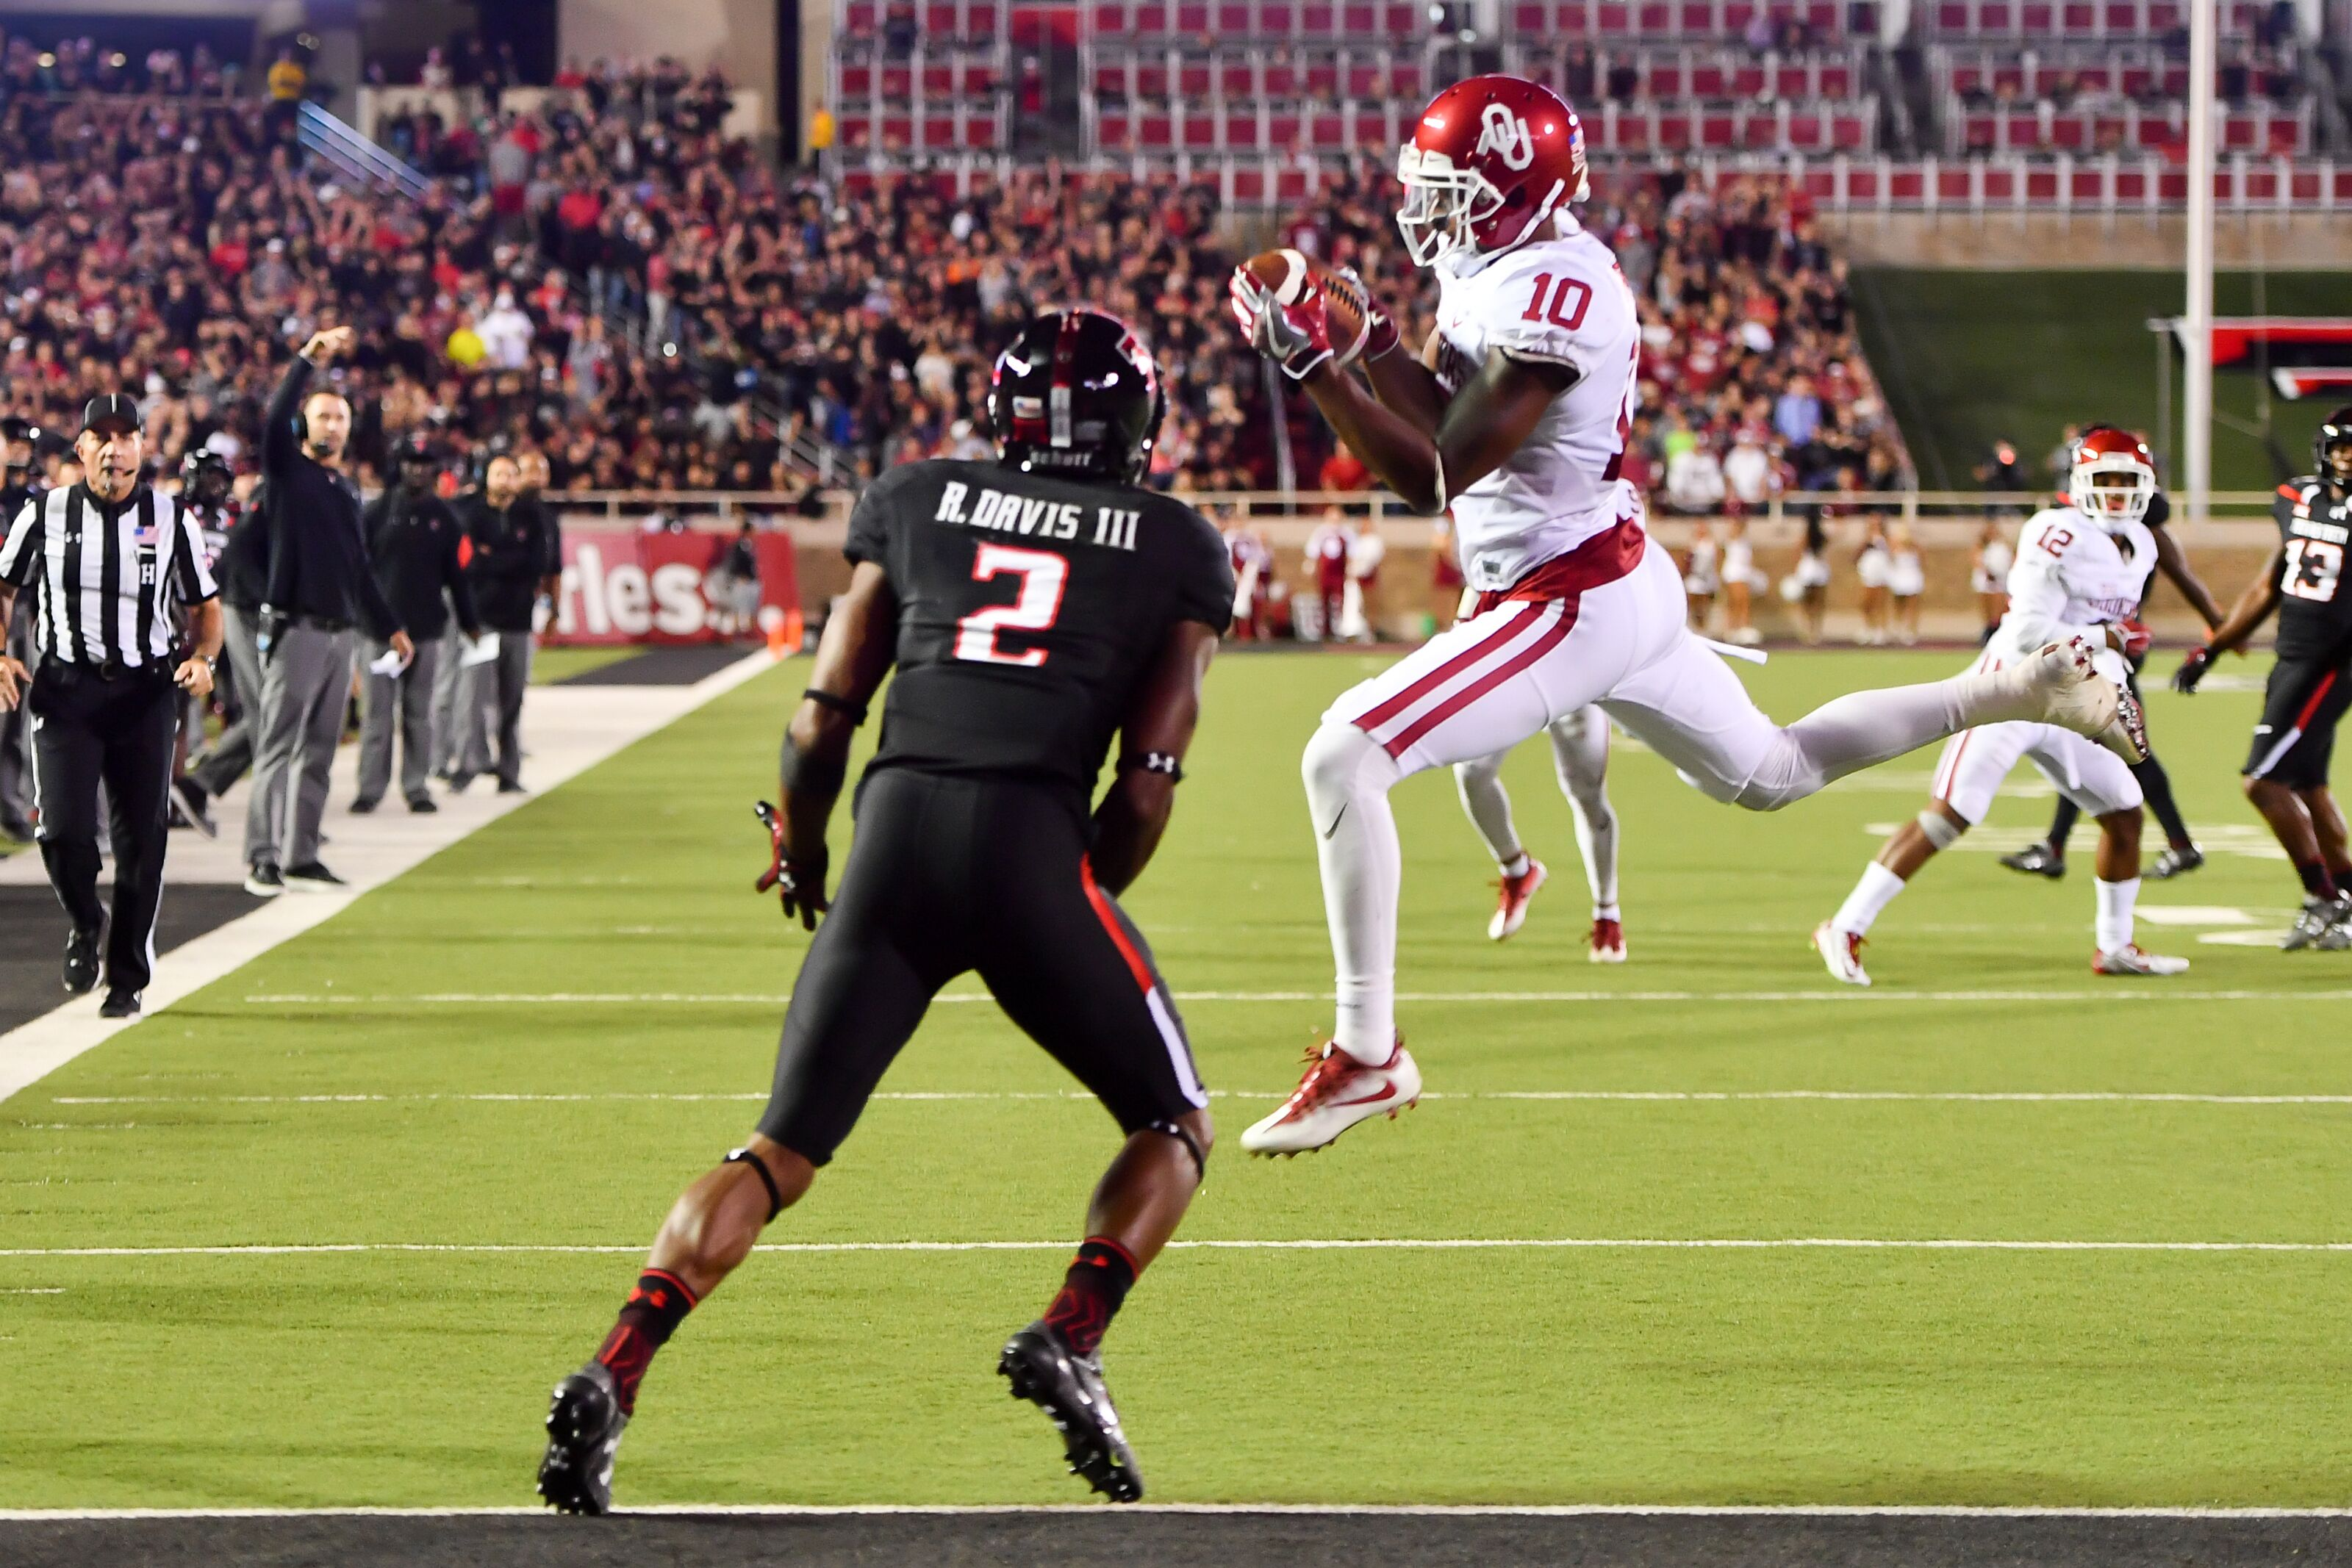 Oklahoma football: How big is the Texas Tech game on Saturday?